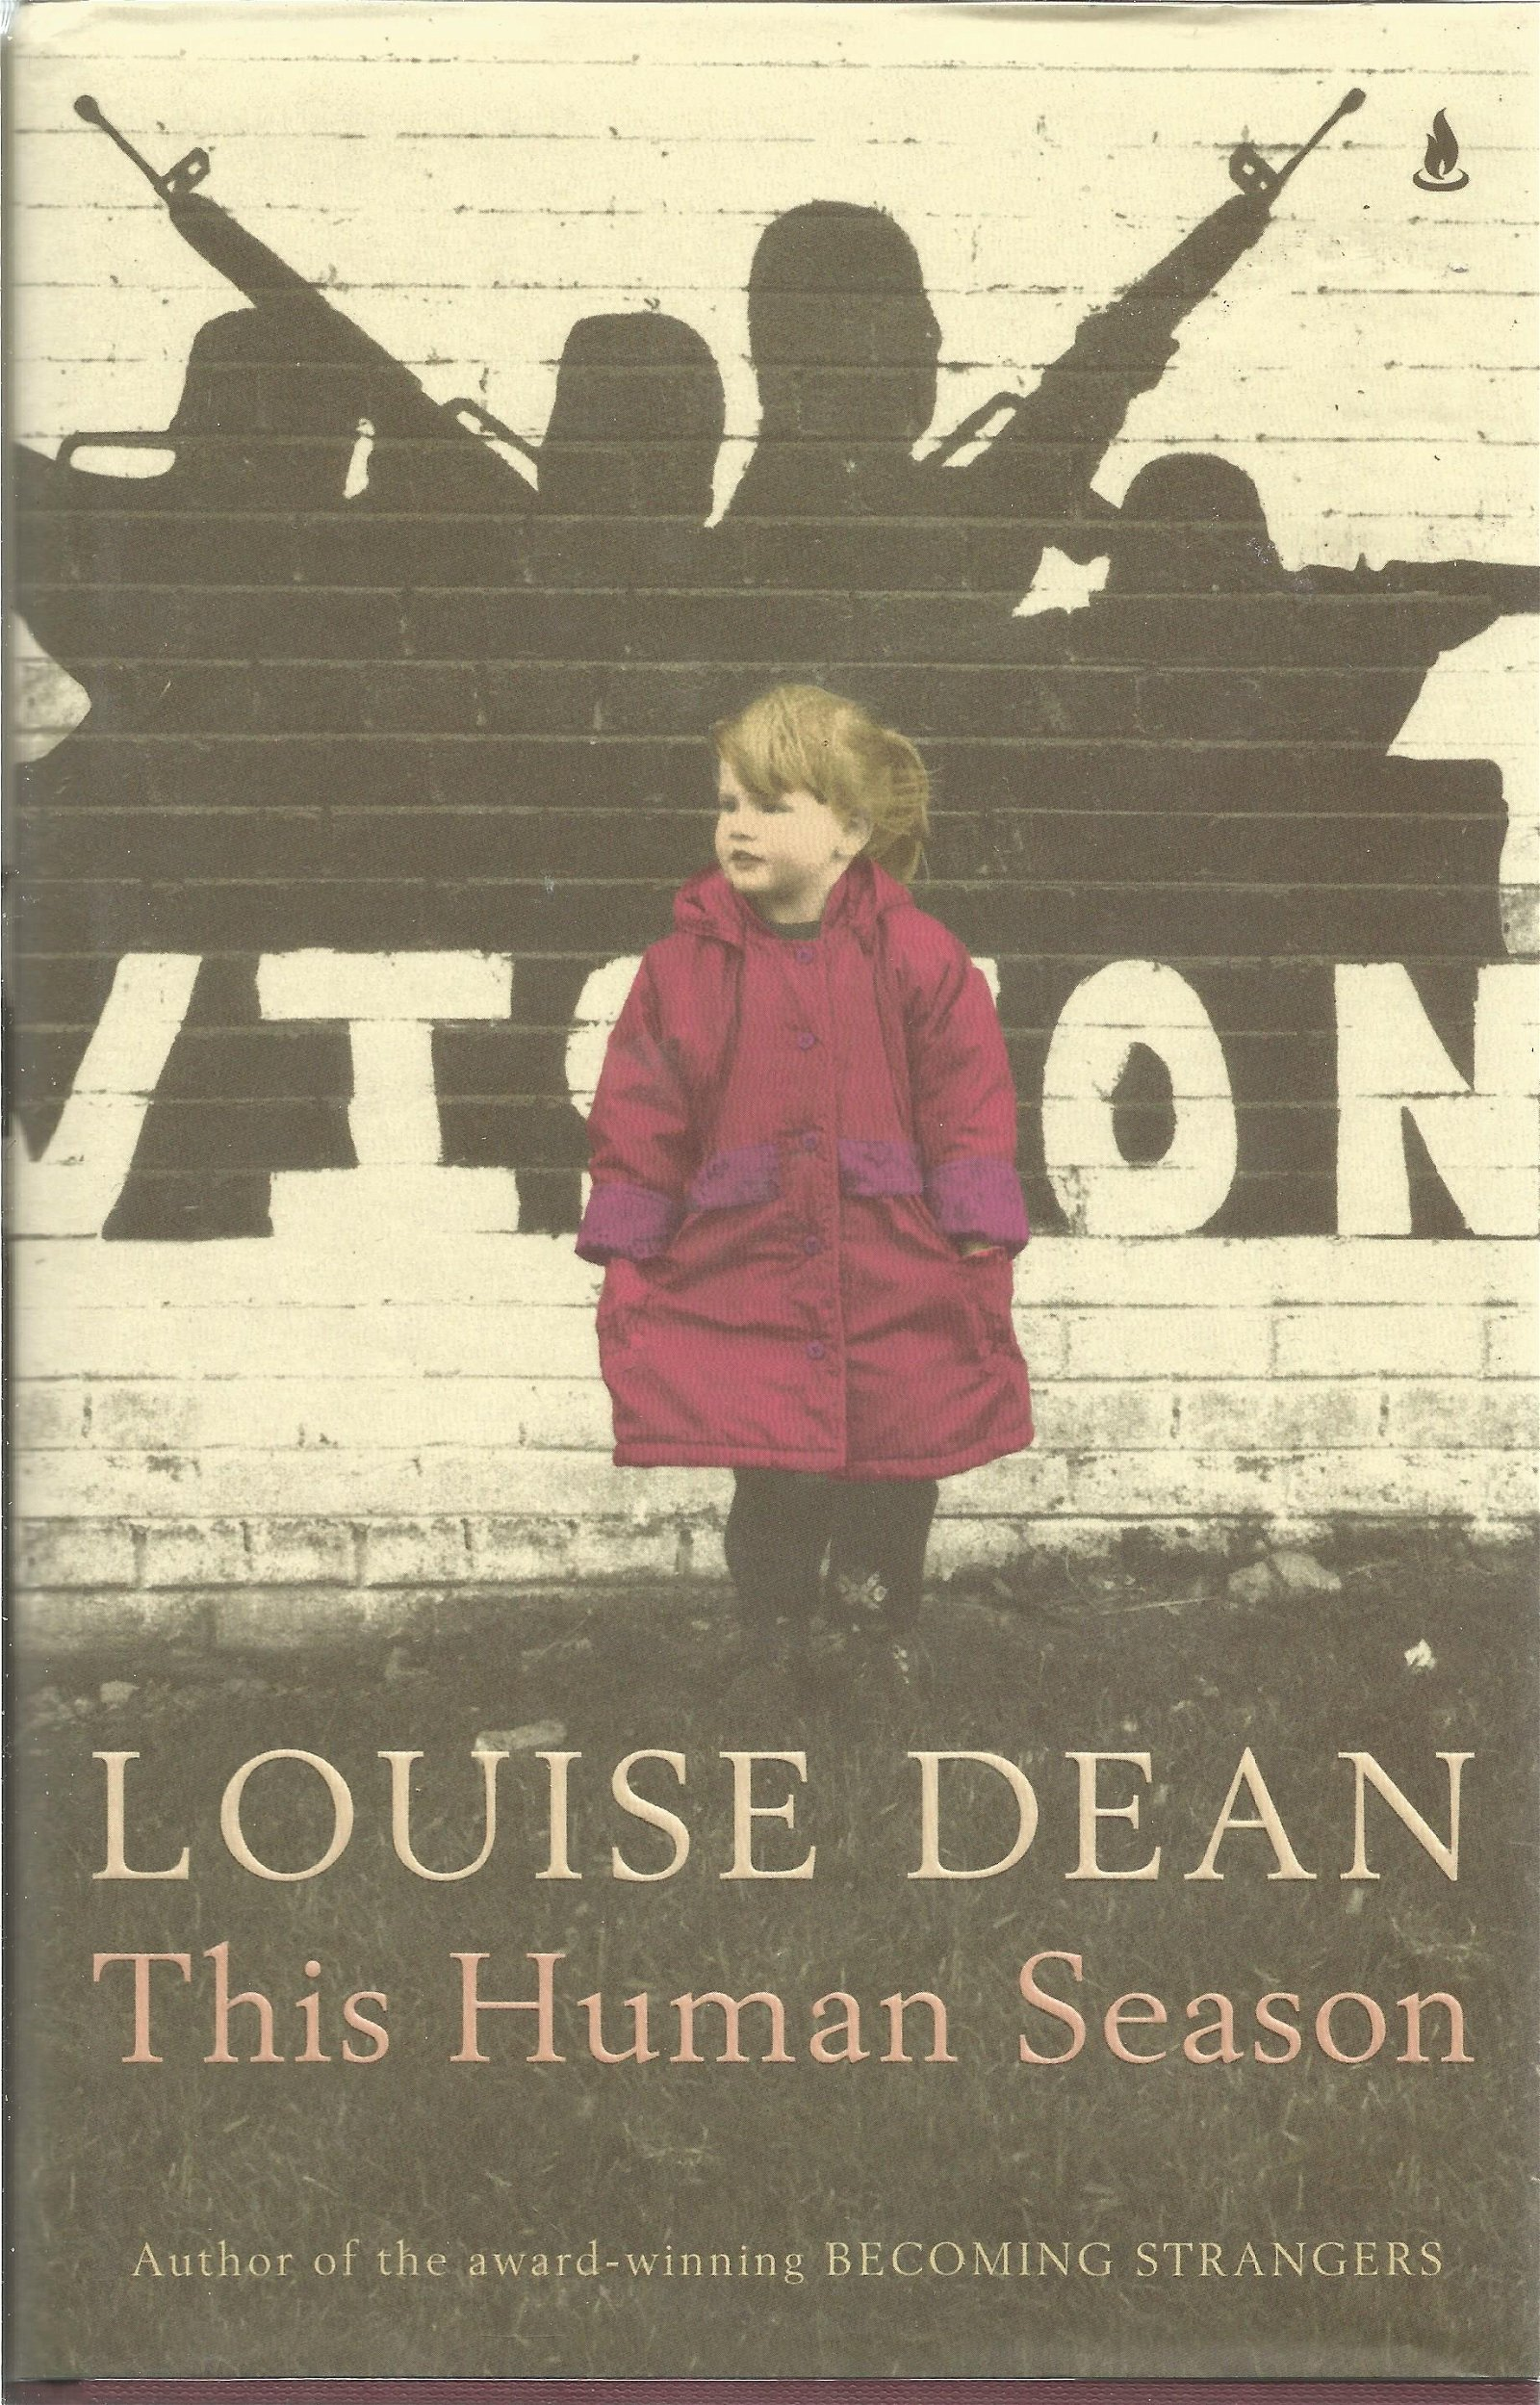 Louise Dean signed This Human Season. Signed on the